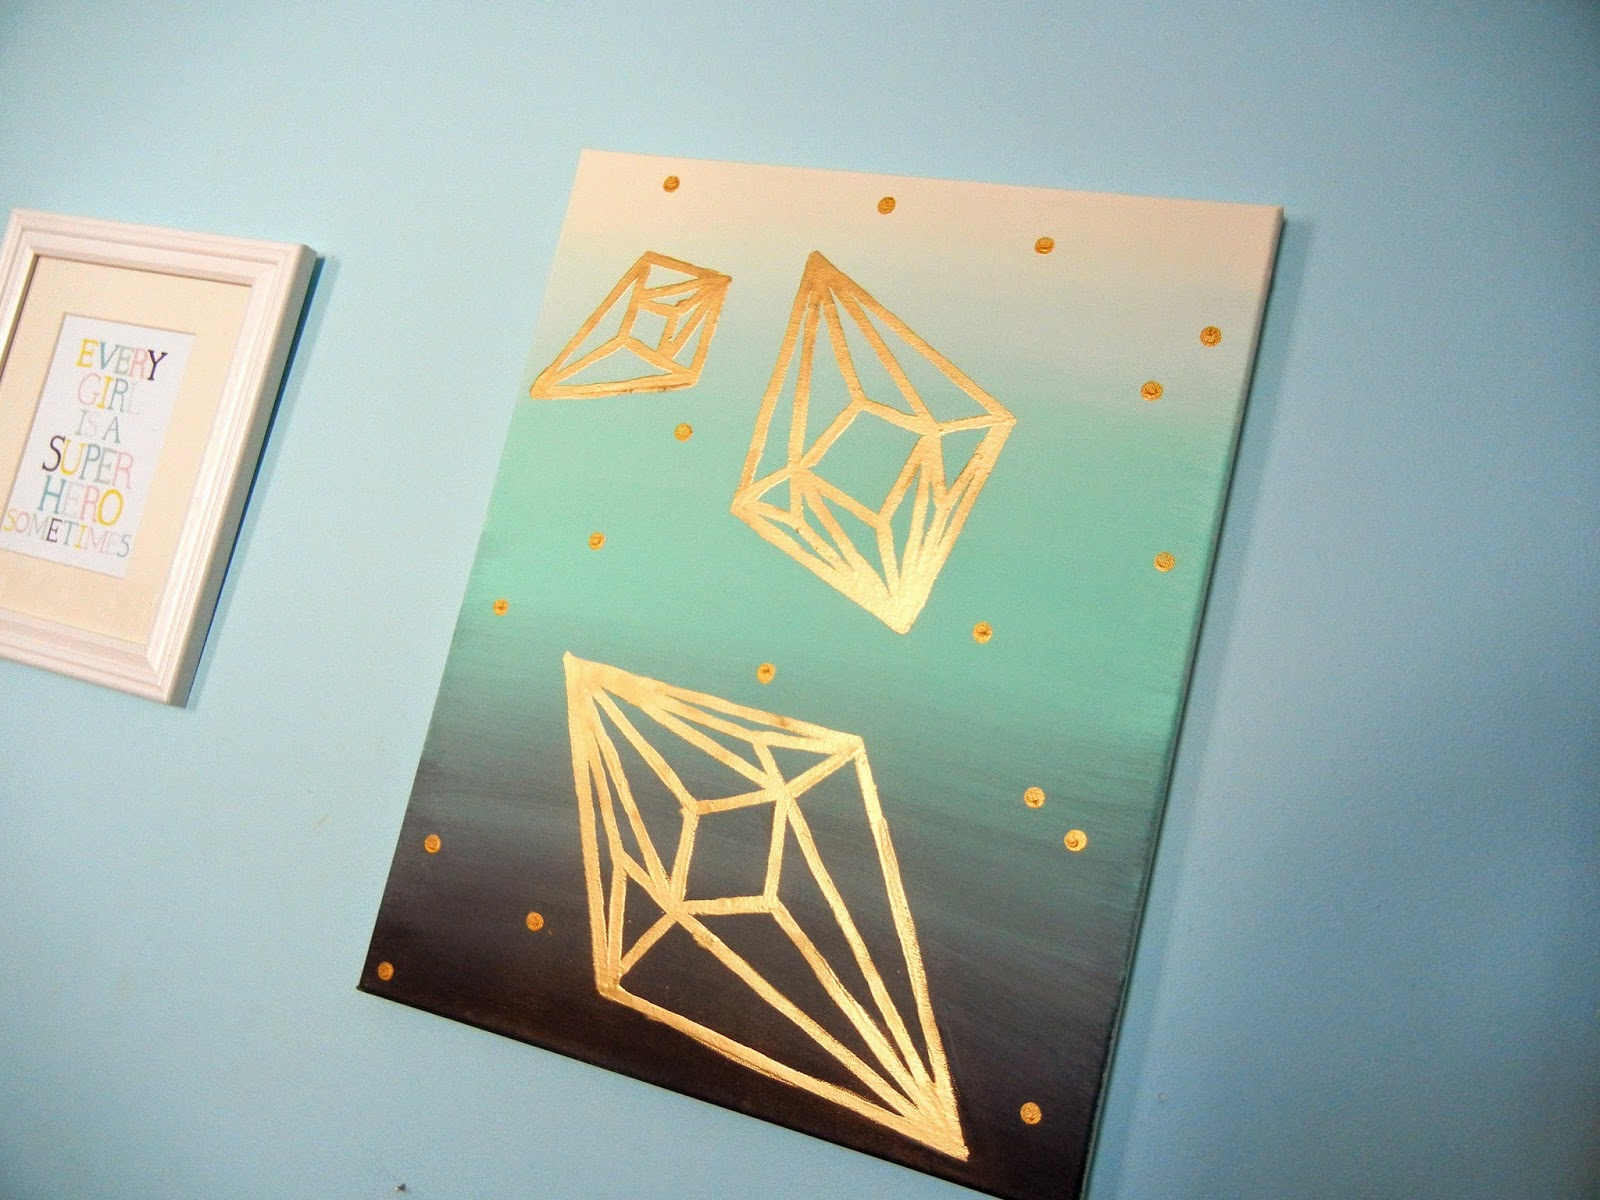 ... I wanted to do some as wall art seeing as some of my walls are pretty bare. I knew I wanted them to be metallic and the background to be a gradient. & NykkeyB: Geometric Diamond Wall Art